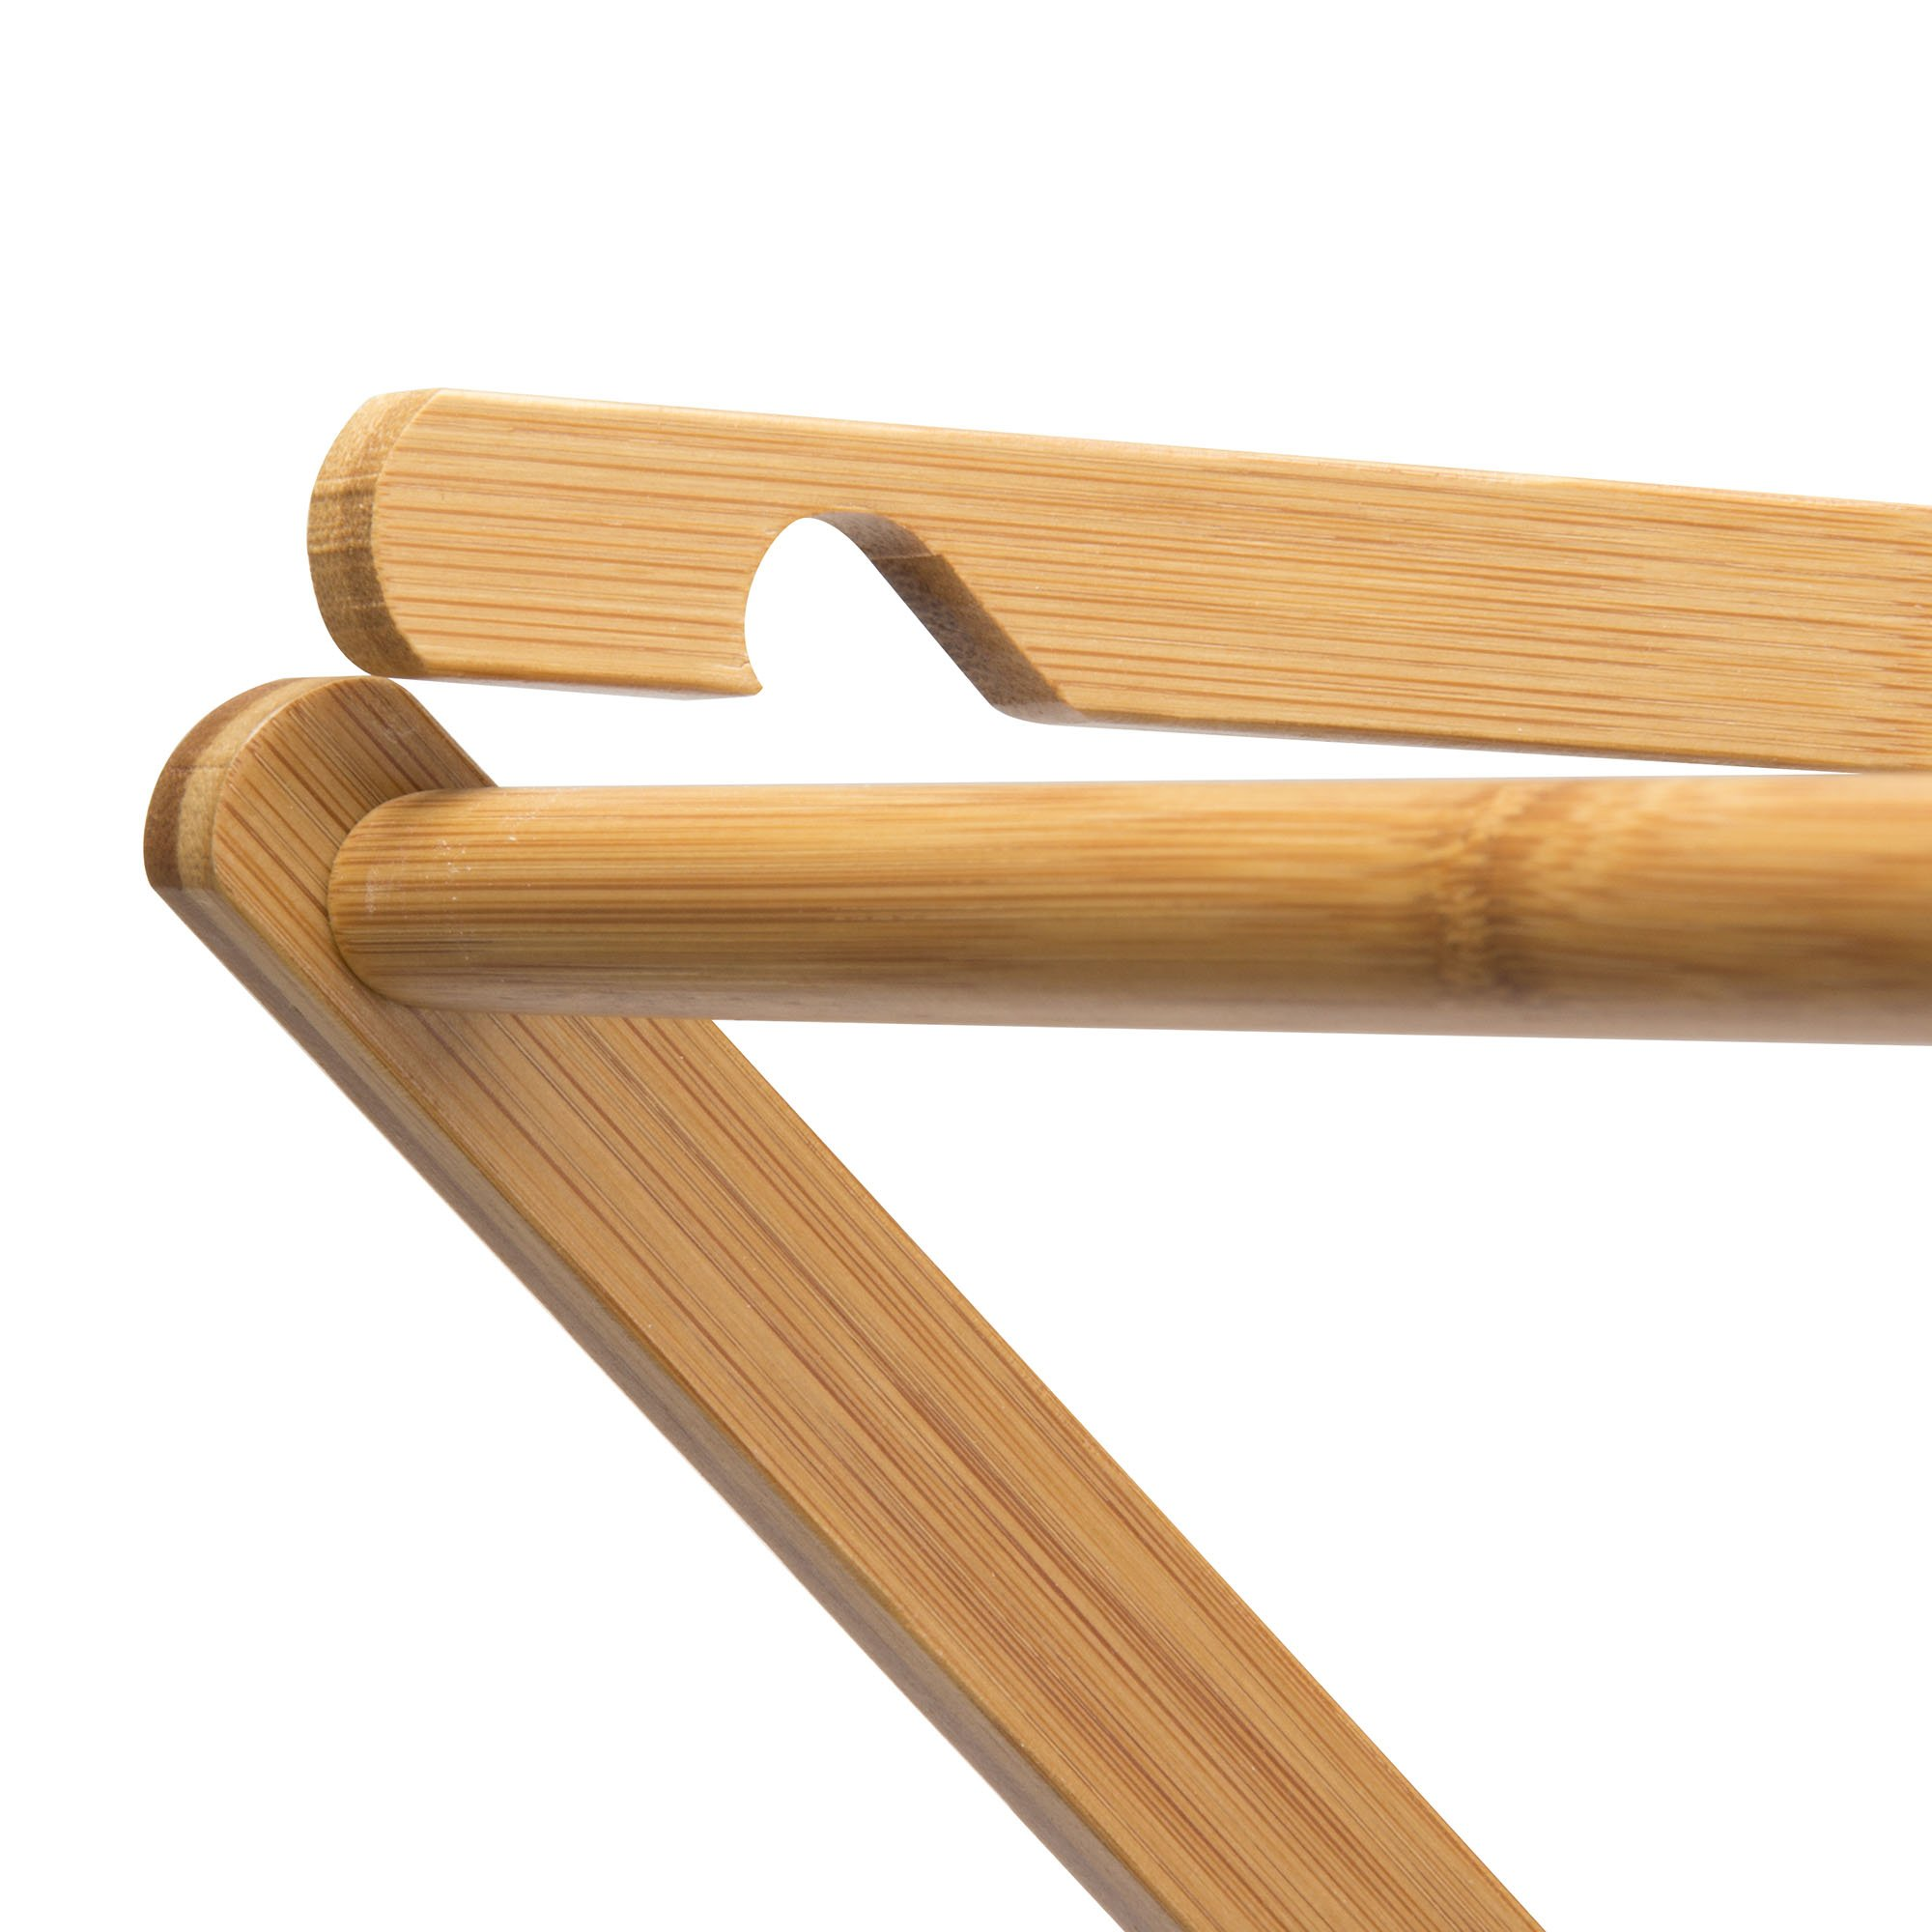 Household Essentials 6524 Tall Indoor Folding Wooden Clothes Drying Rack | Dry Laundry and Hang Clothes | Bamboo by Household Essentials (Image #2)